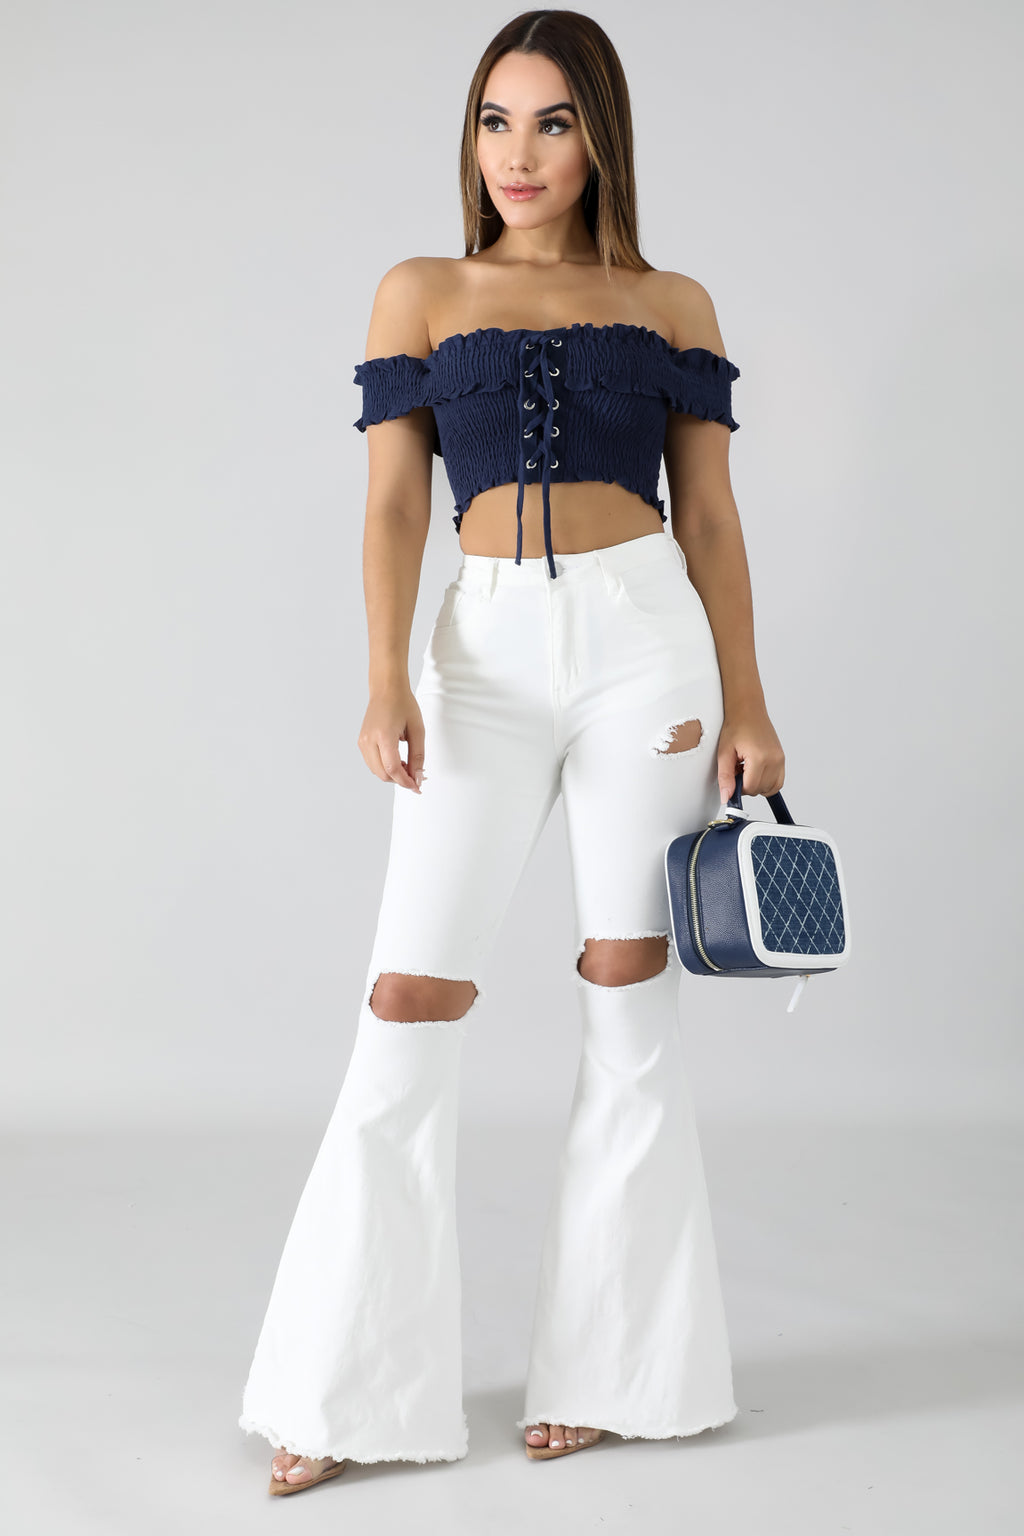 Accordion Tube Top | GitiOnline